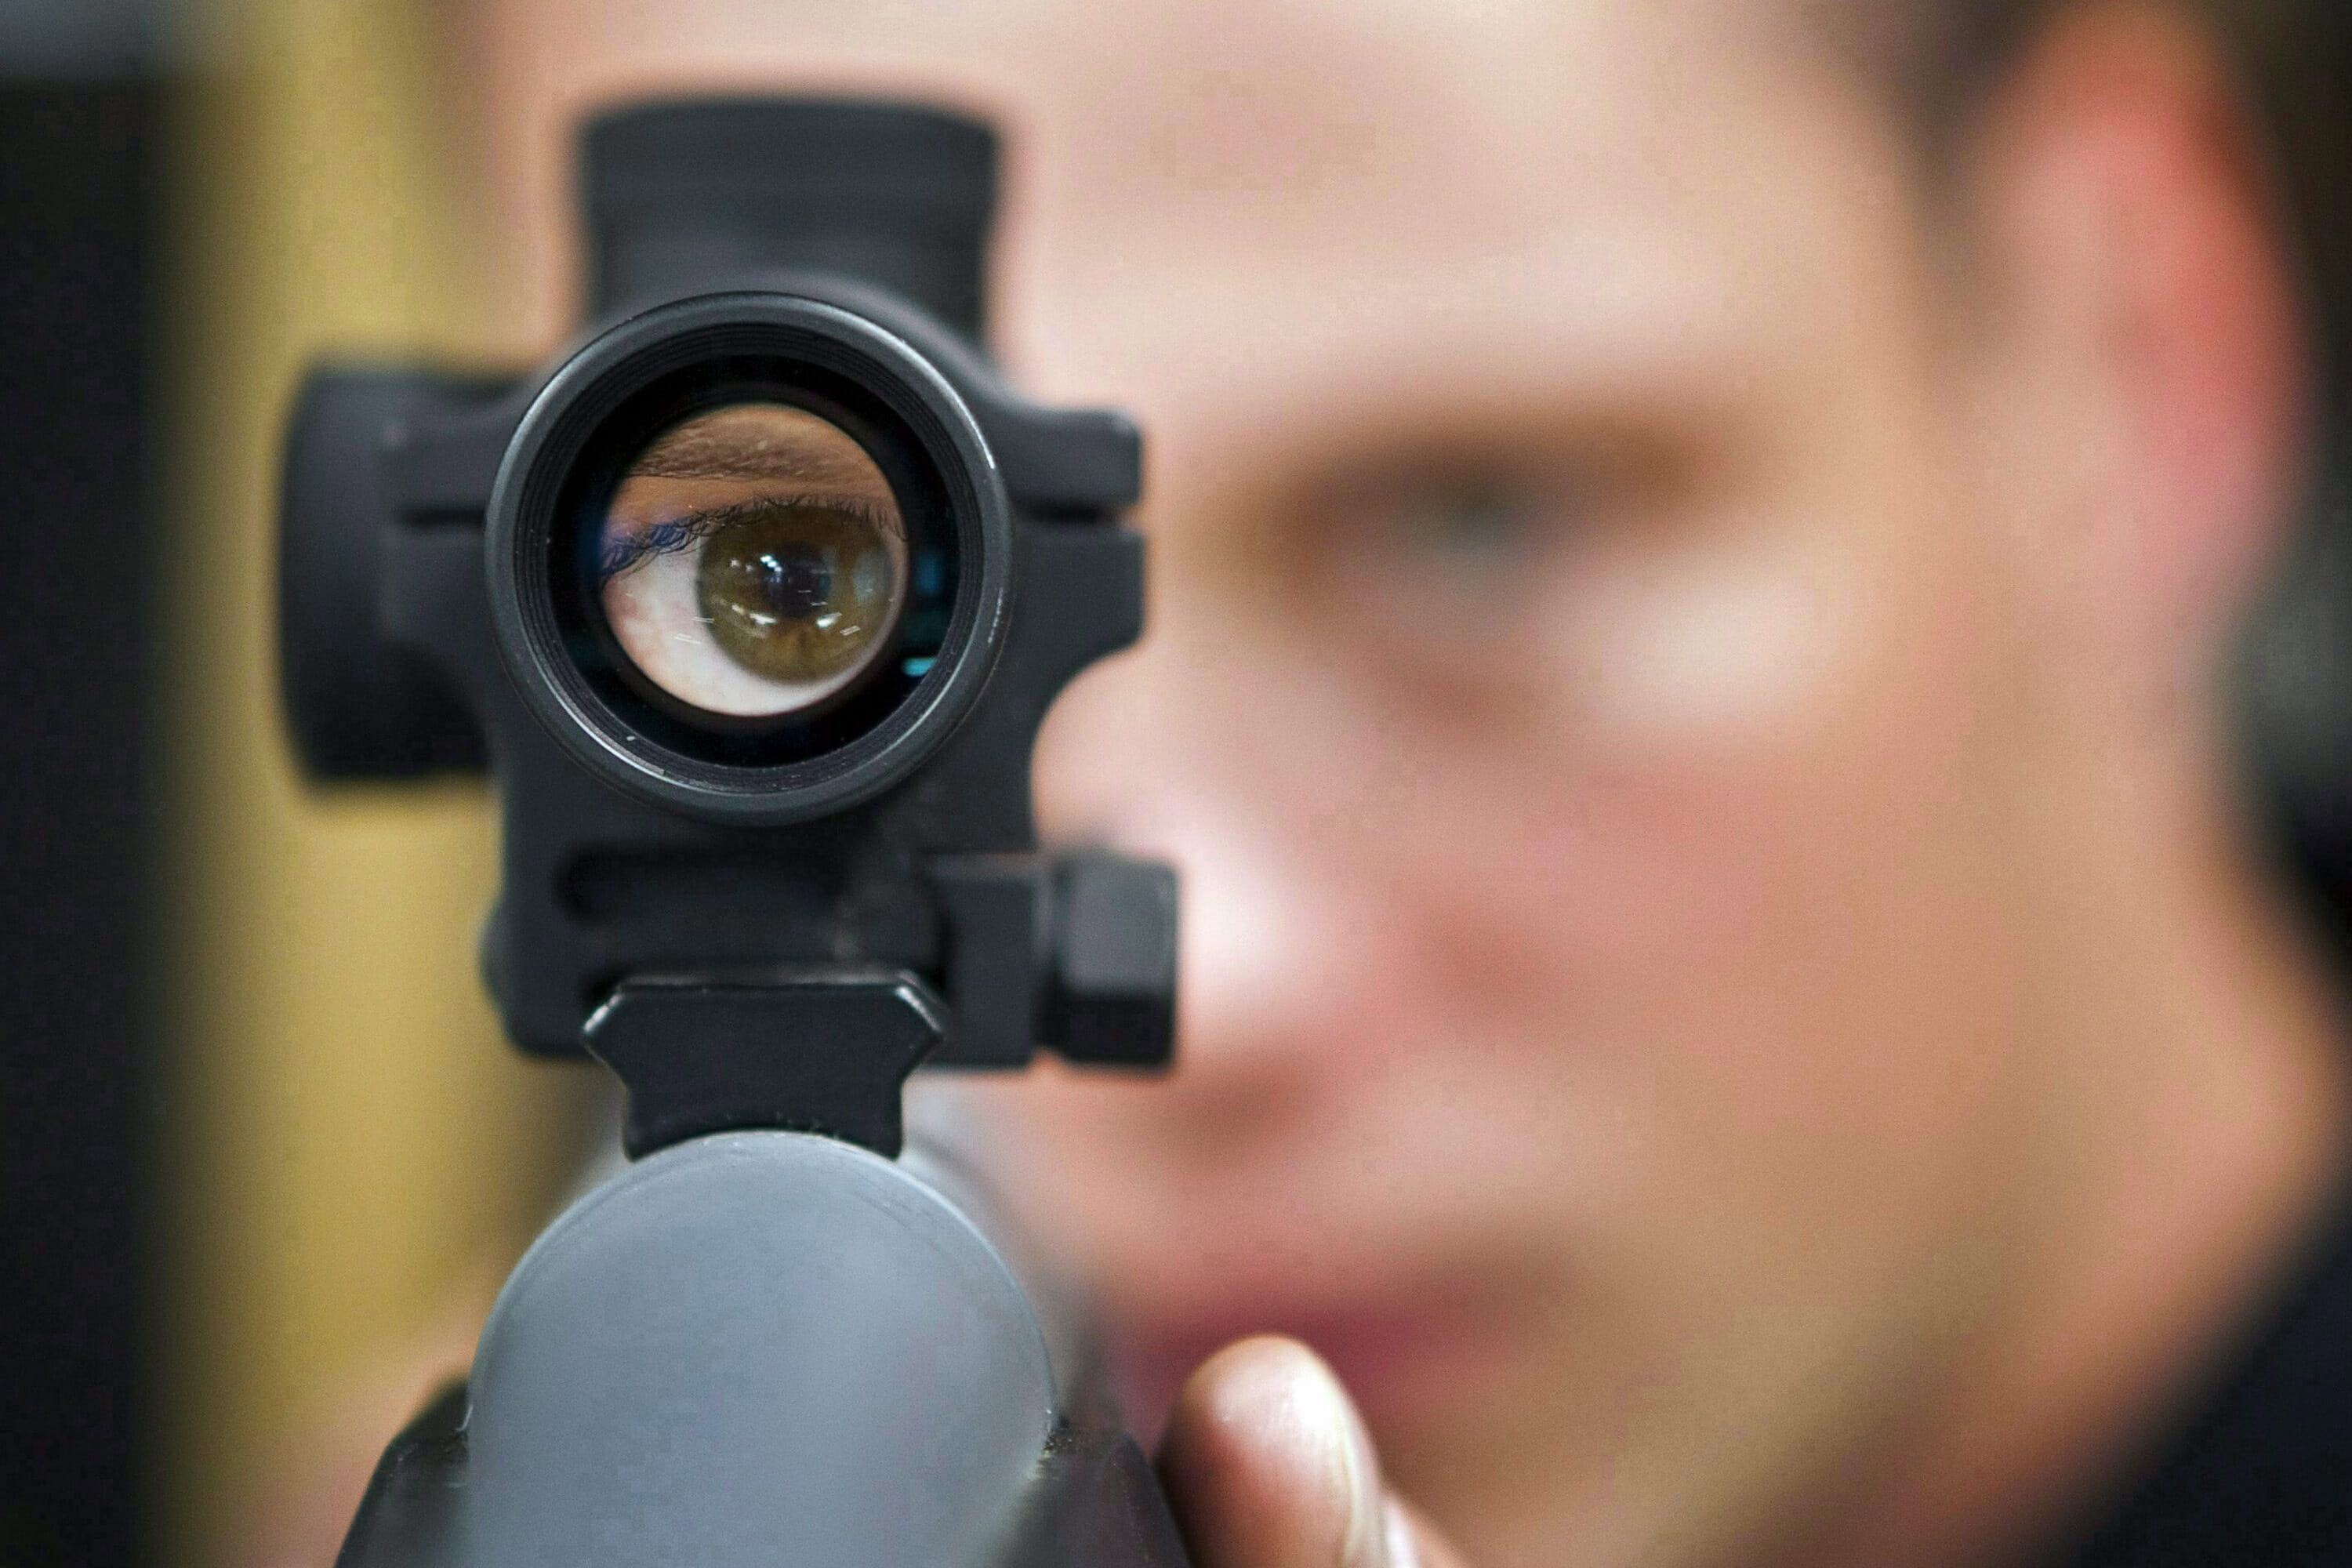 a man looks through the sights on a firearm